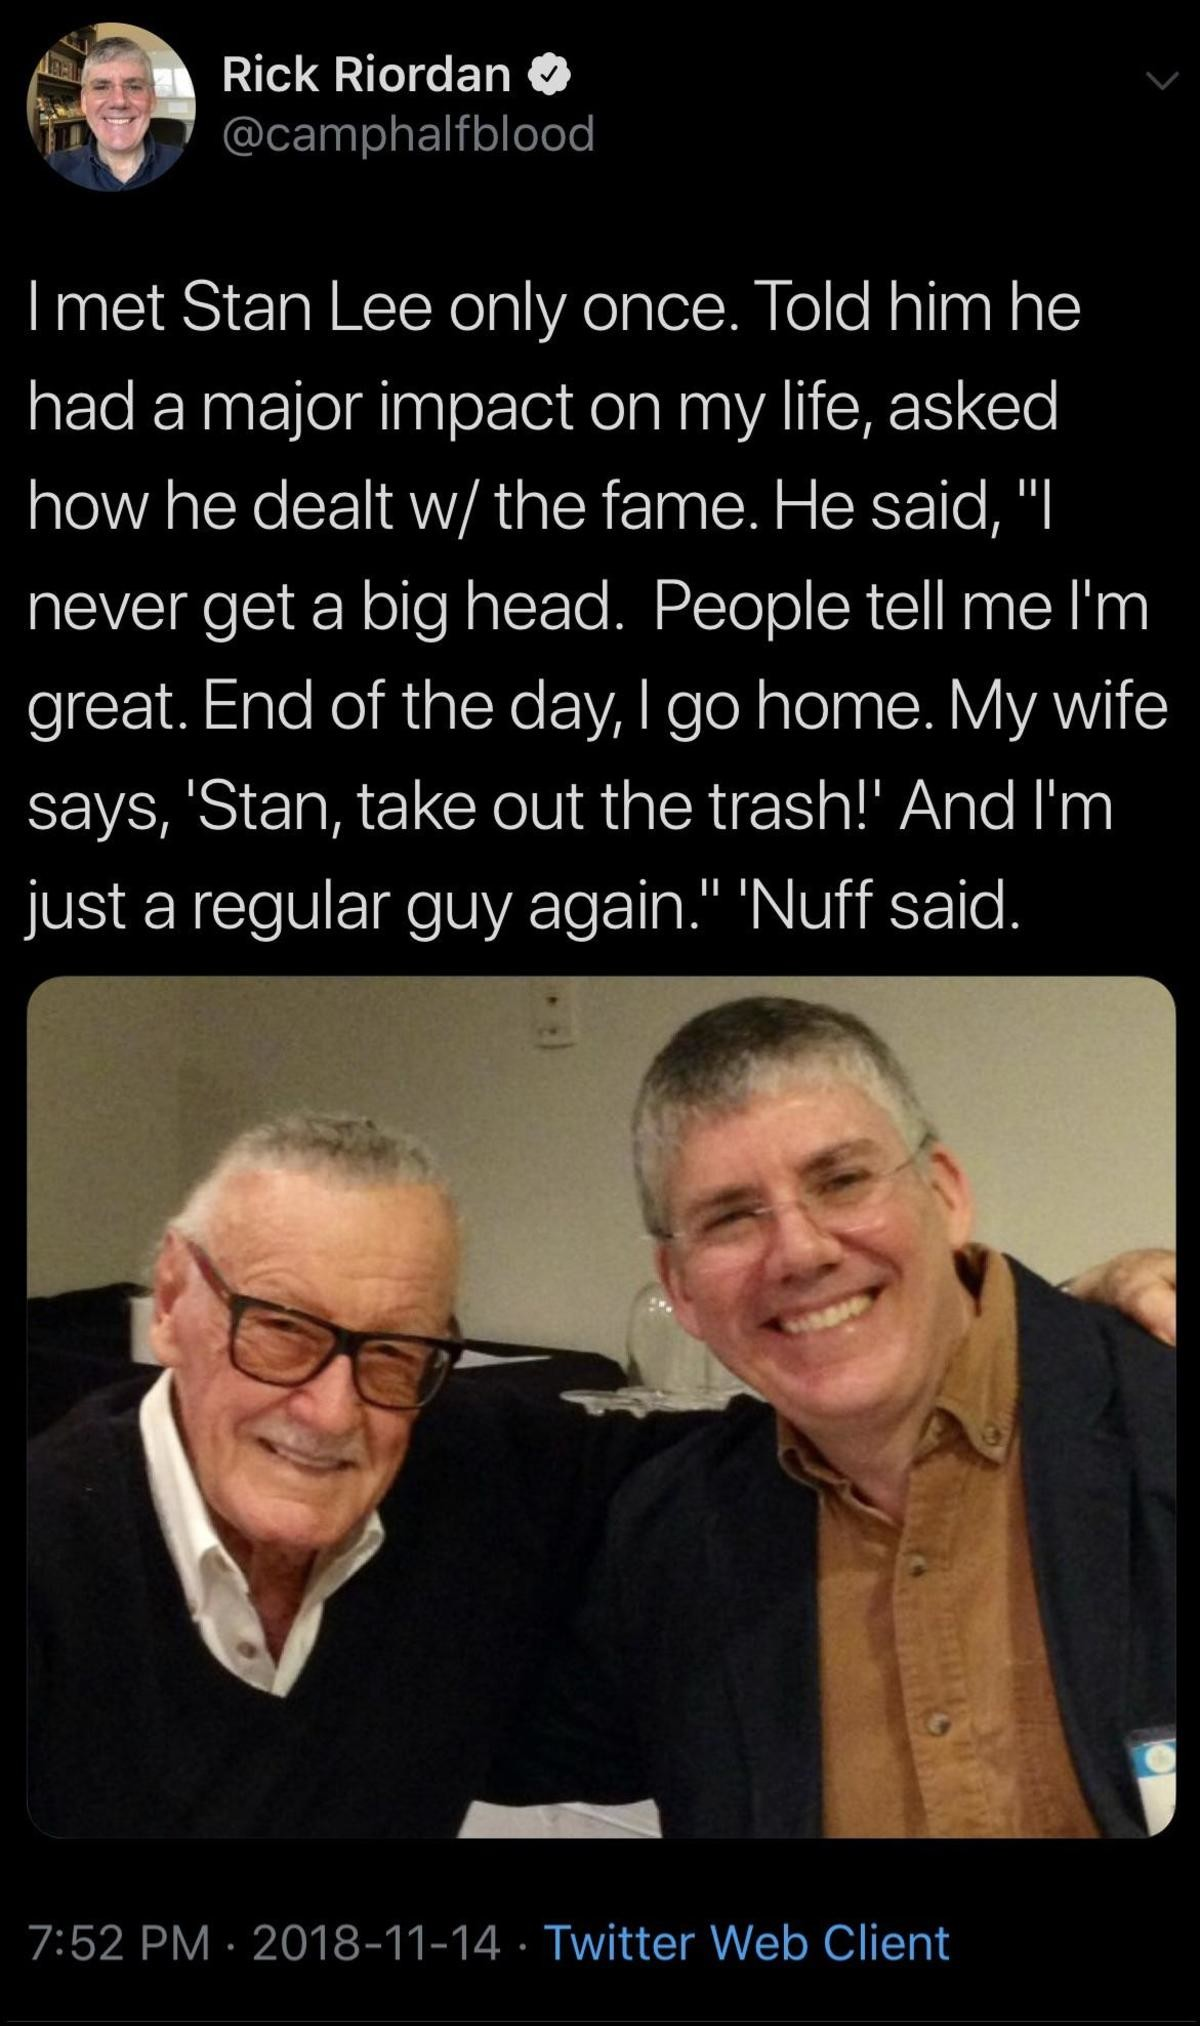 stan the man. .. I saw Stan Lee at a grocery store in Los Angeles yesterday. I told him how cool it was to meet him in person, but I didn't want to be a douche and bother him an